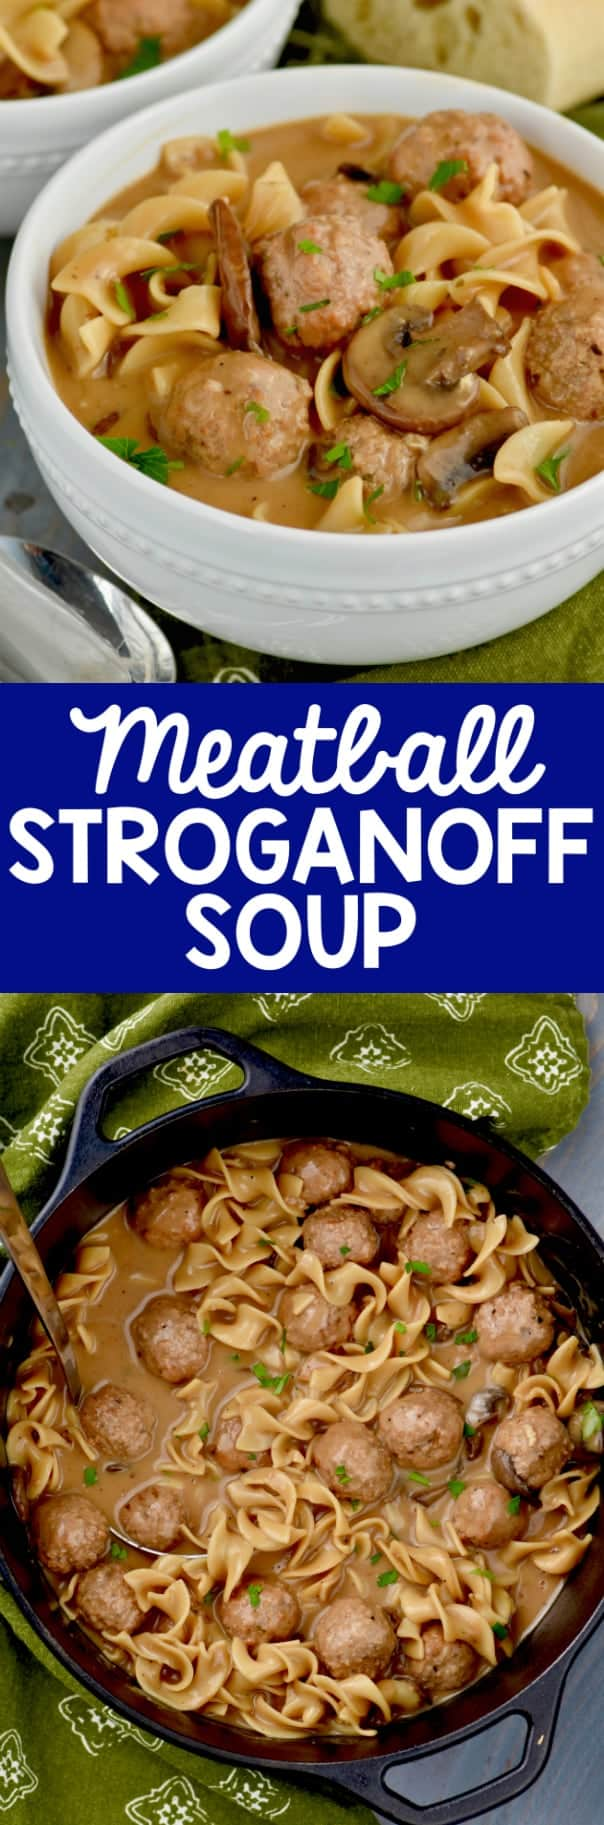 This Meatball Beef Stroganoff soup has the most creamy rich broth from scratch. So perfect for dinner!